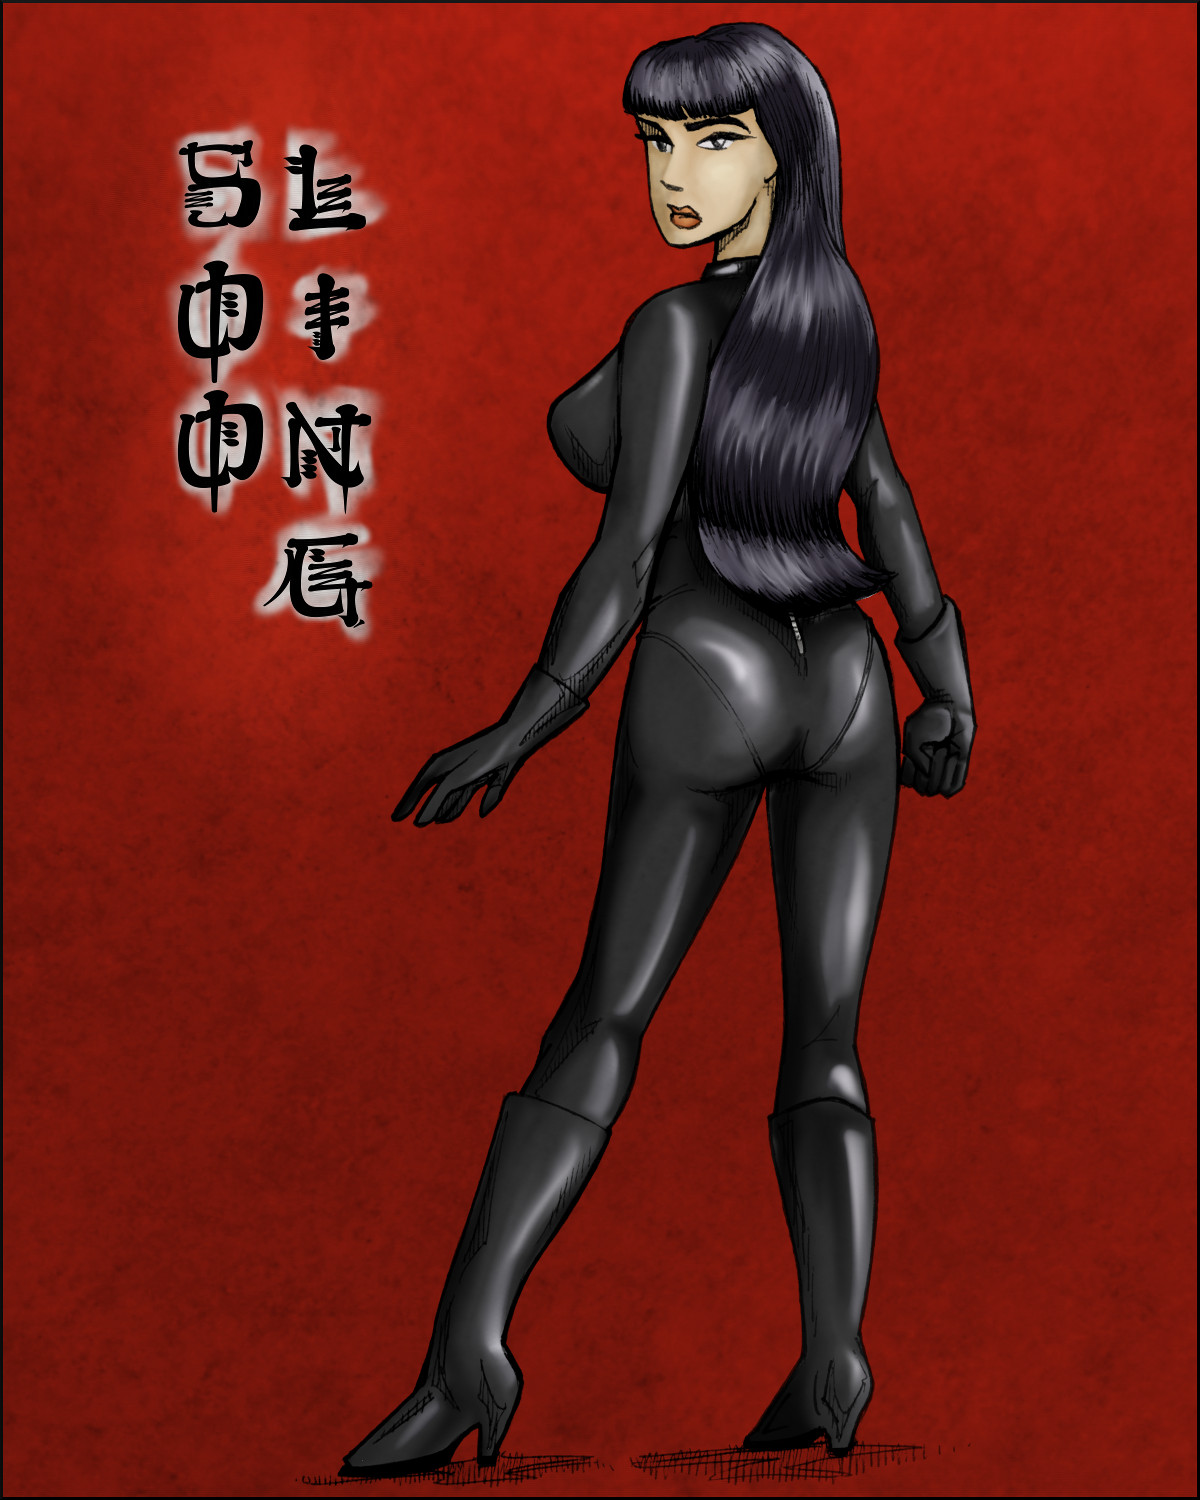 Soo Ling in a sexy black catsuit.